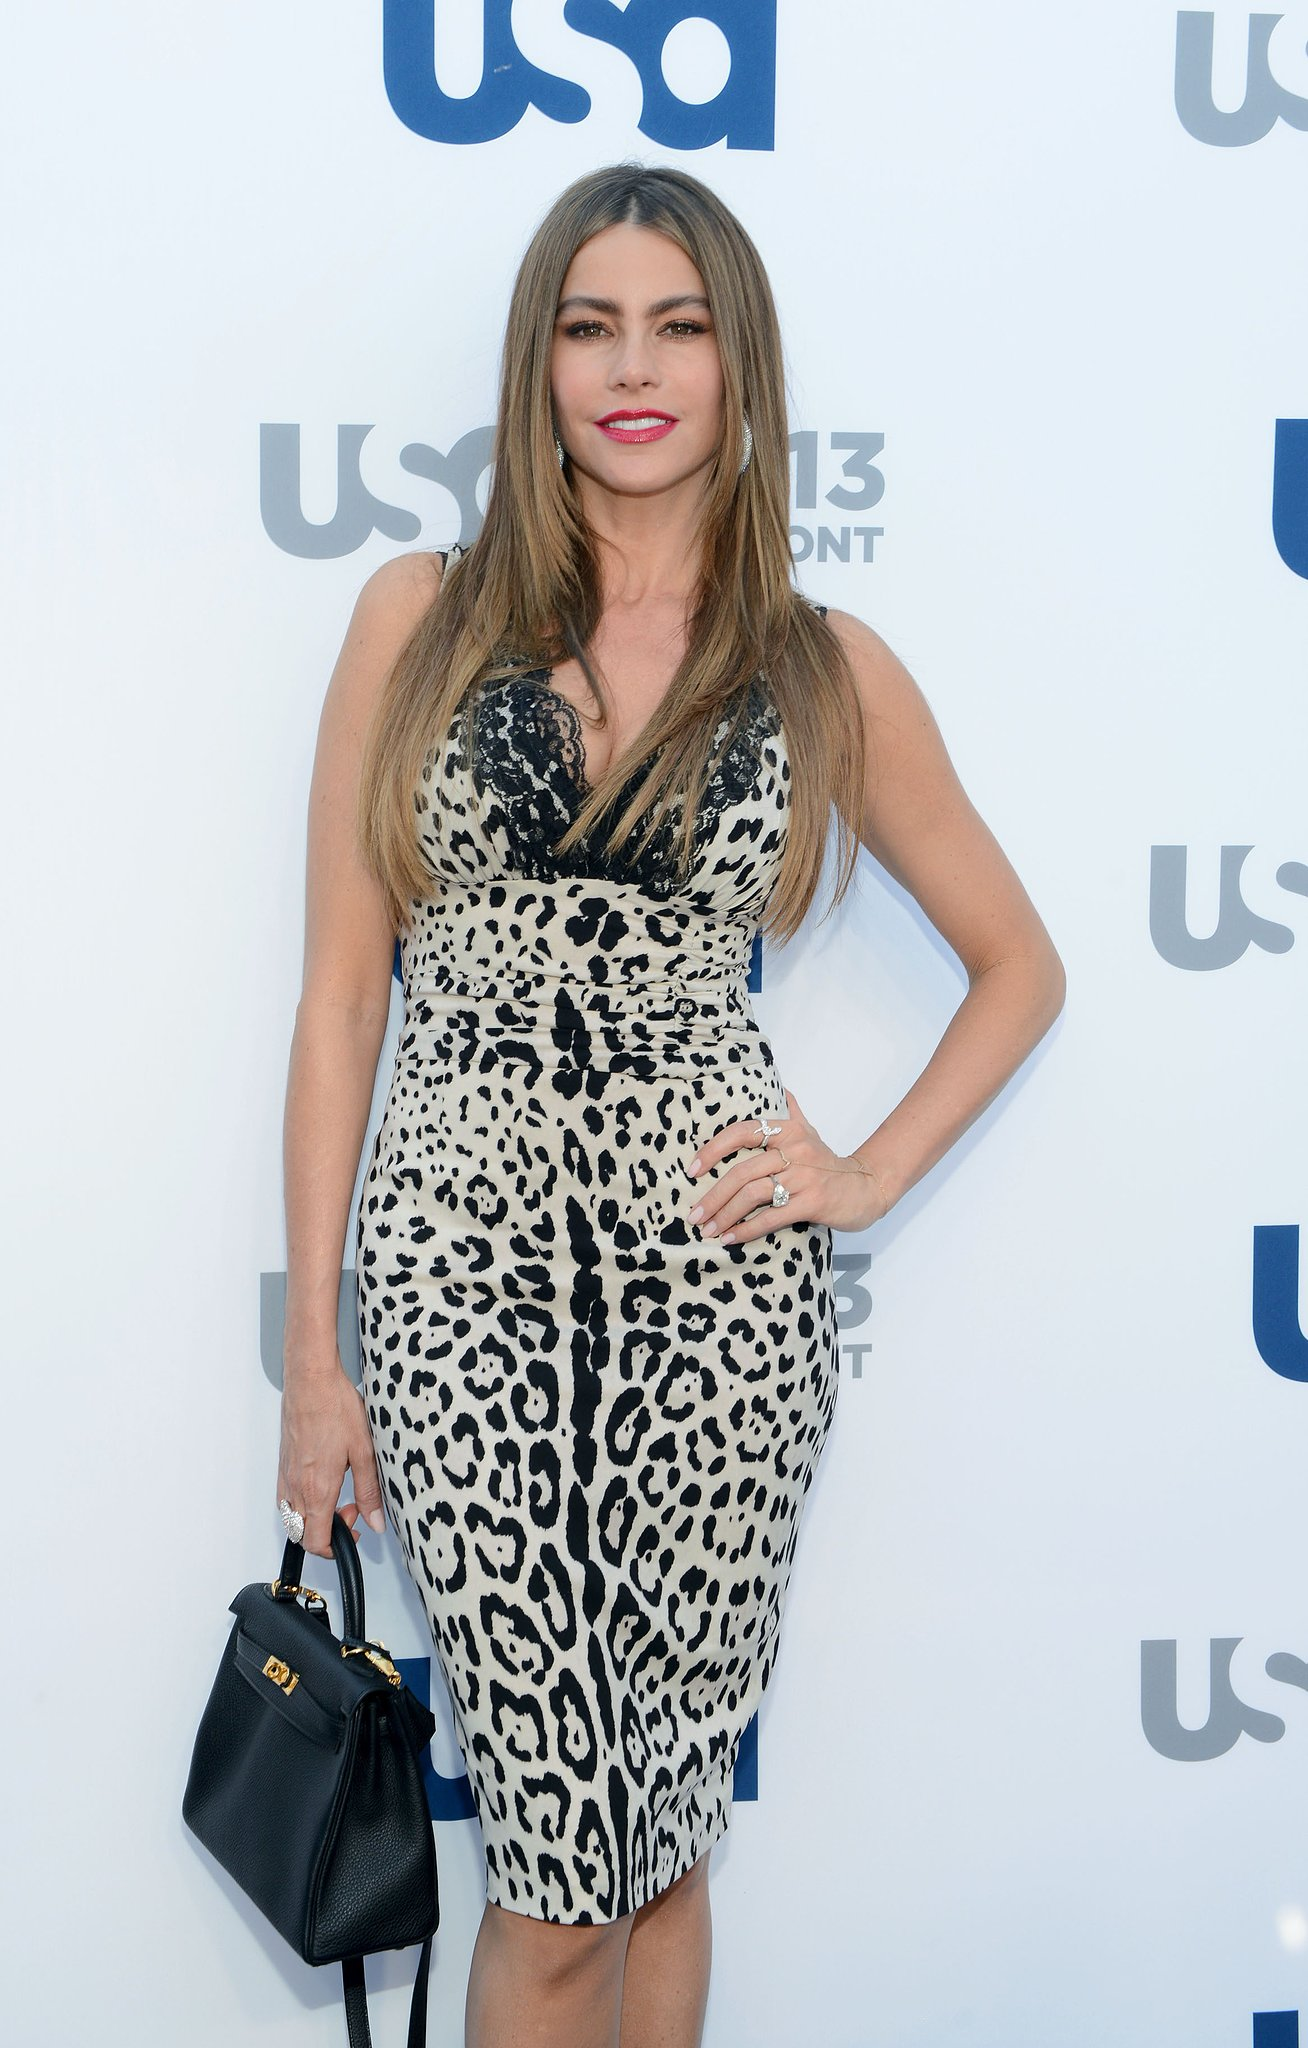 Sofia Vergara attended the USA upfronts.